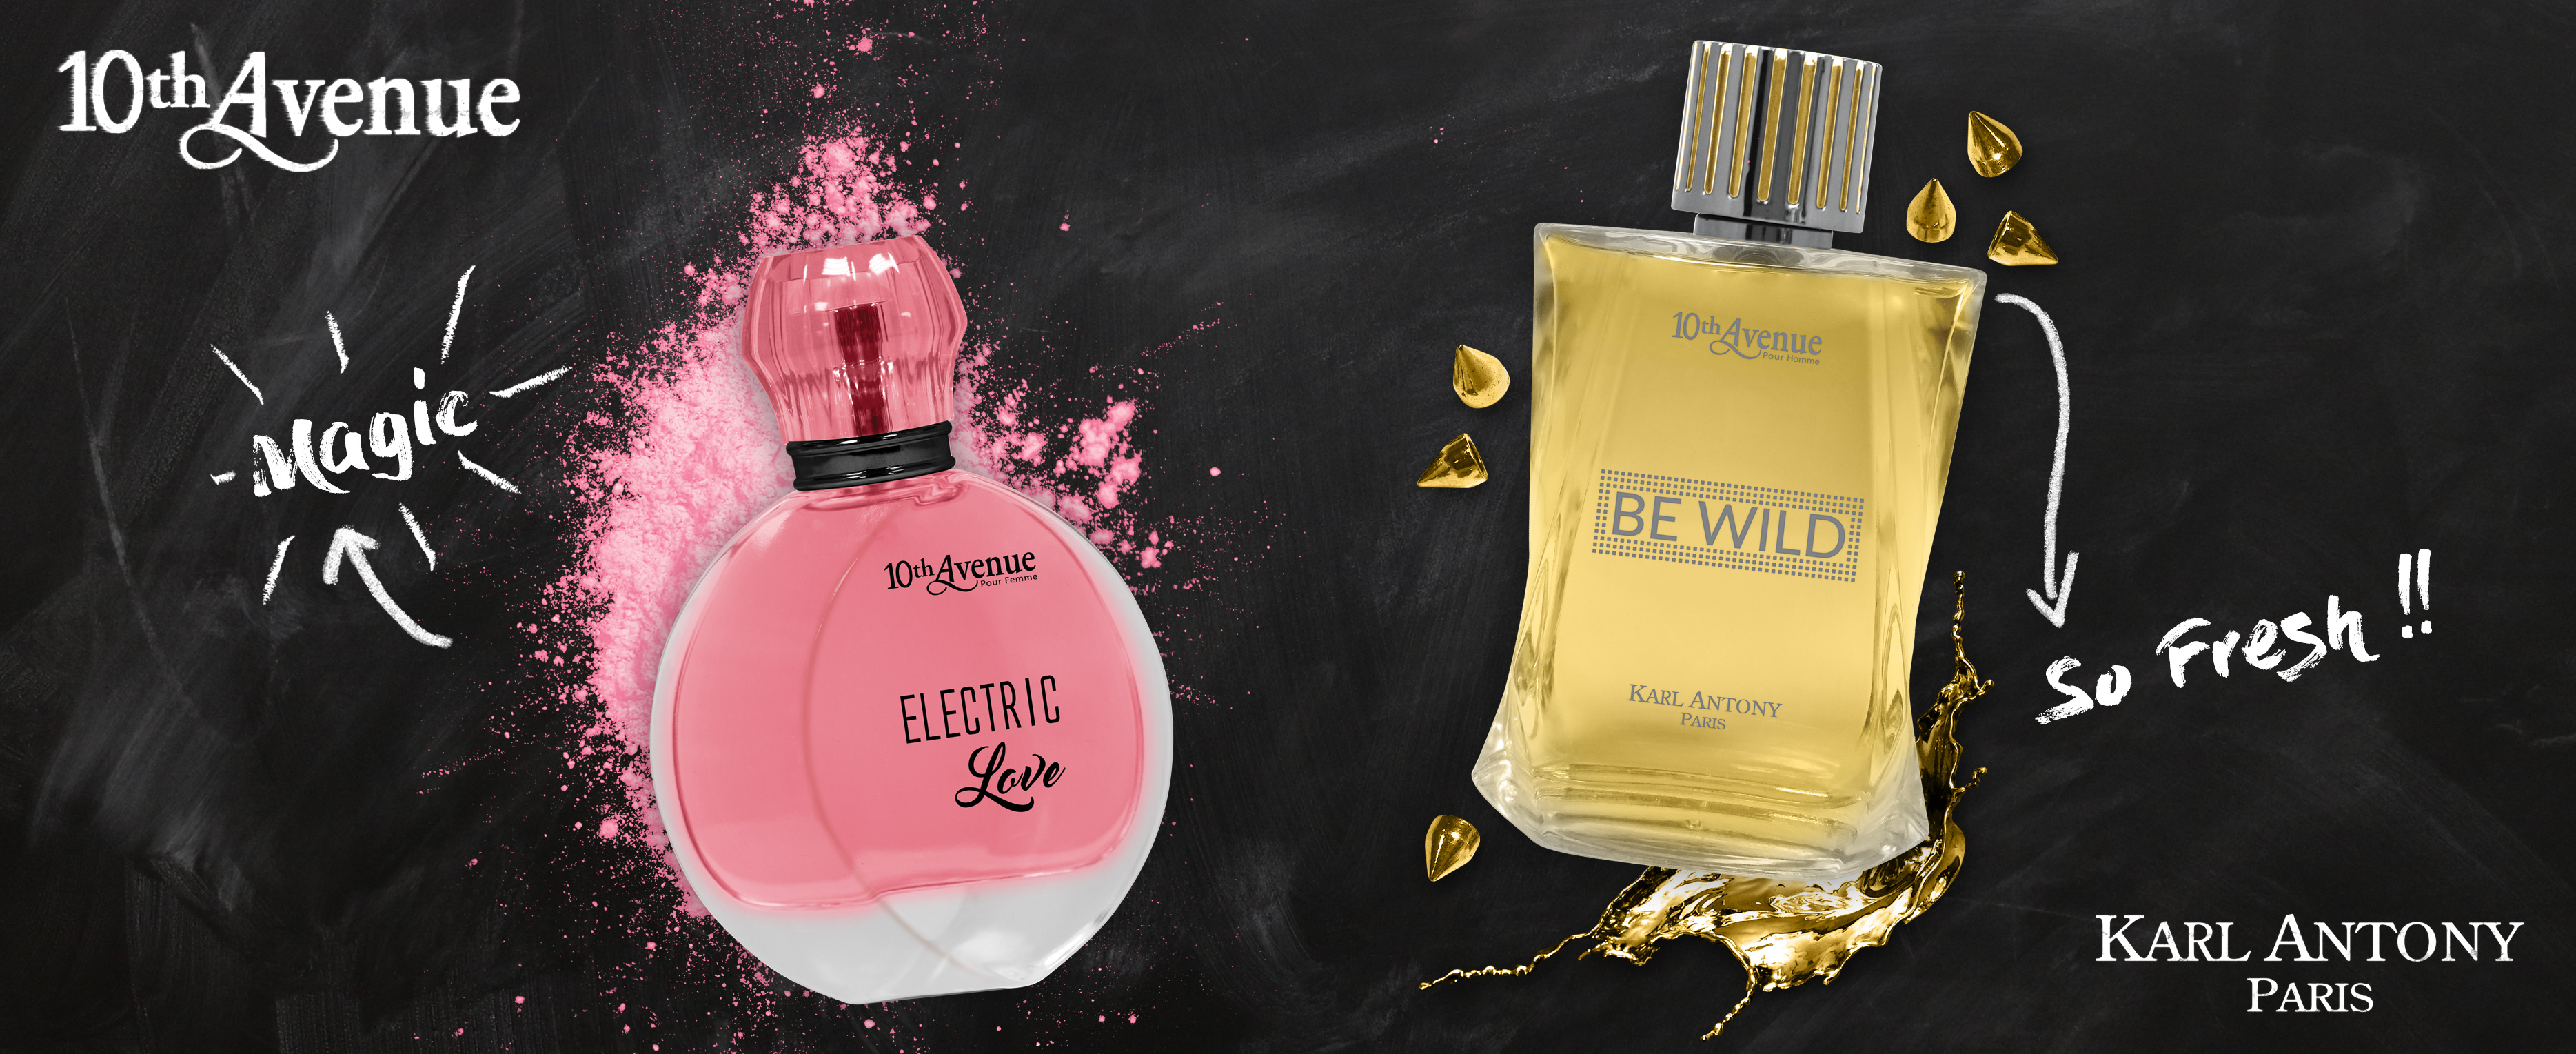 Parfums-JJV-Vivier-10th-Avenue-Karl-Antony-accueil-BE-WILD-ELECTRIC-LOVE